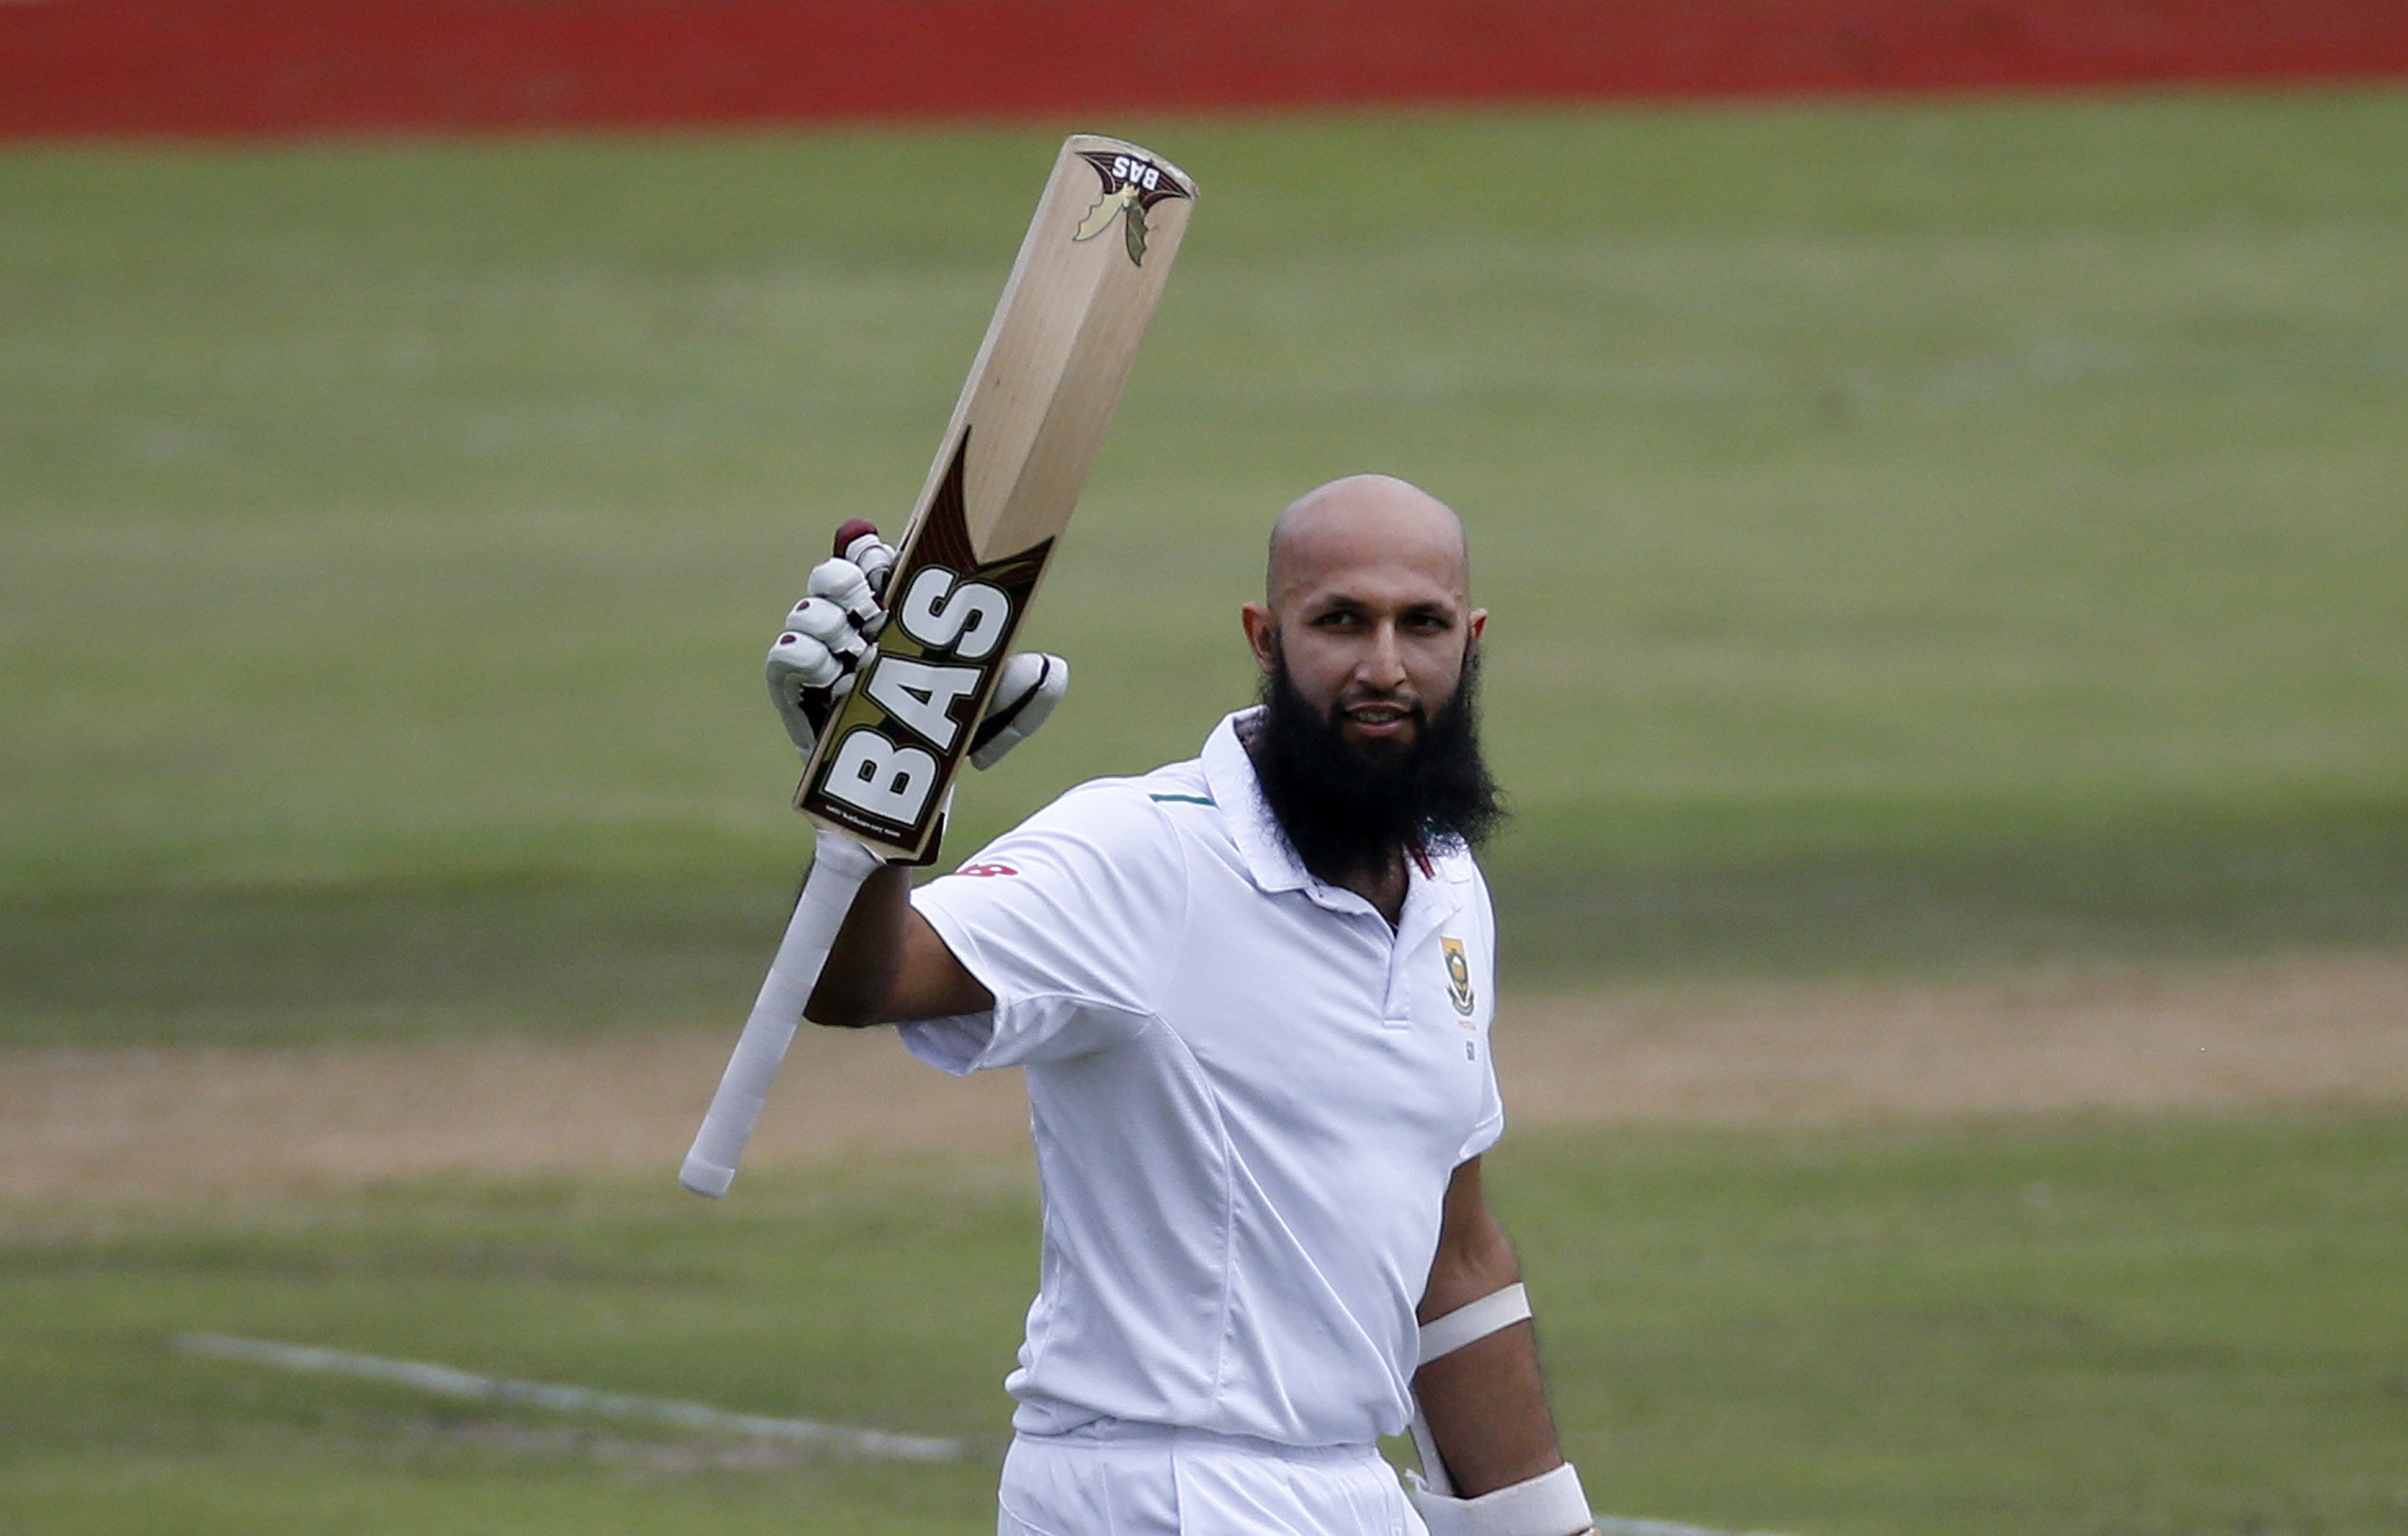 Centurion is also a favourite of Amla who is going through a difficult patch with the bat